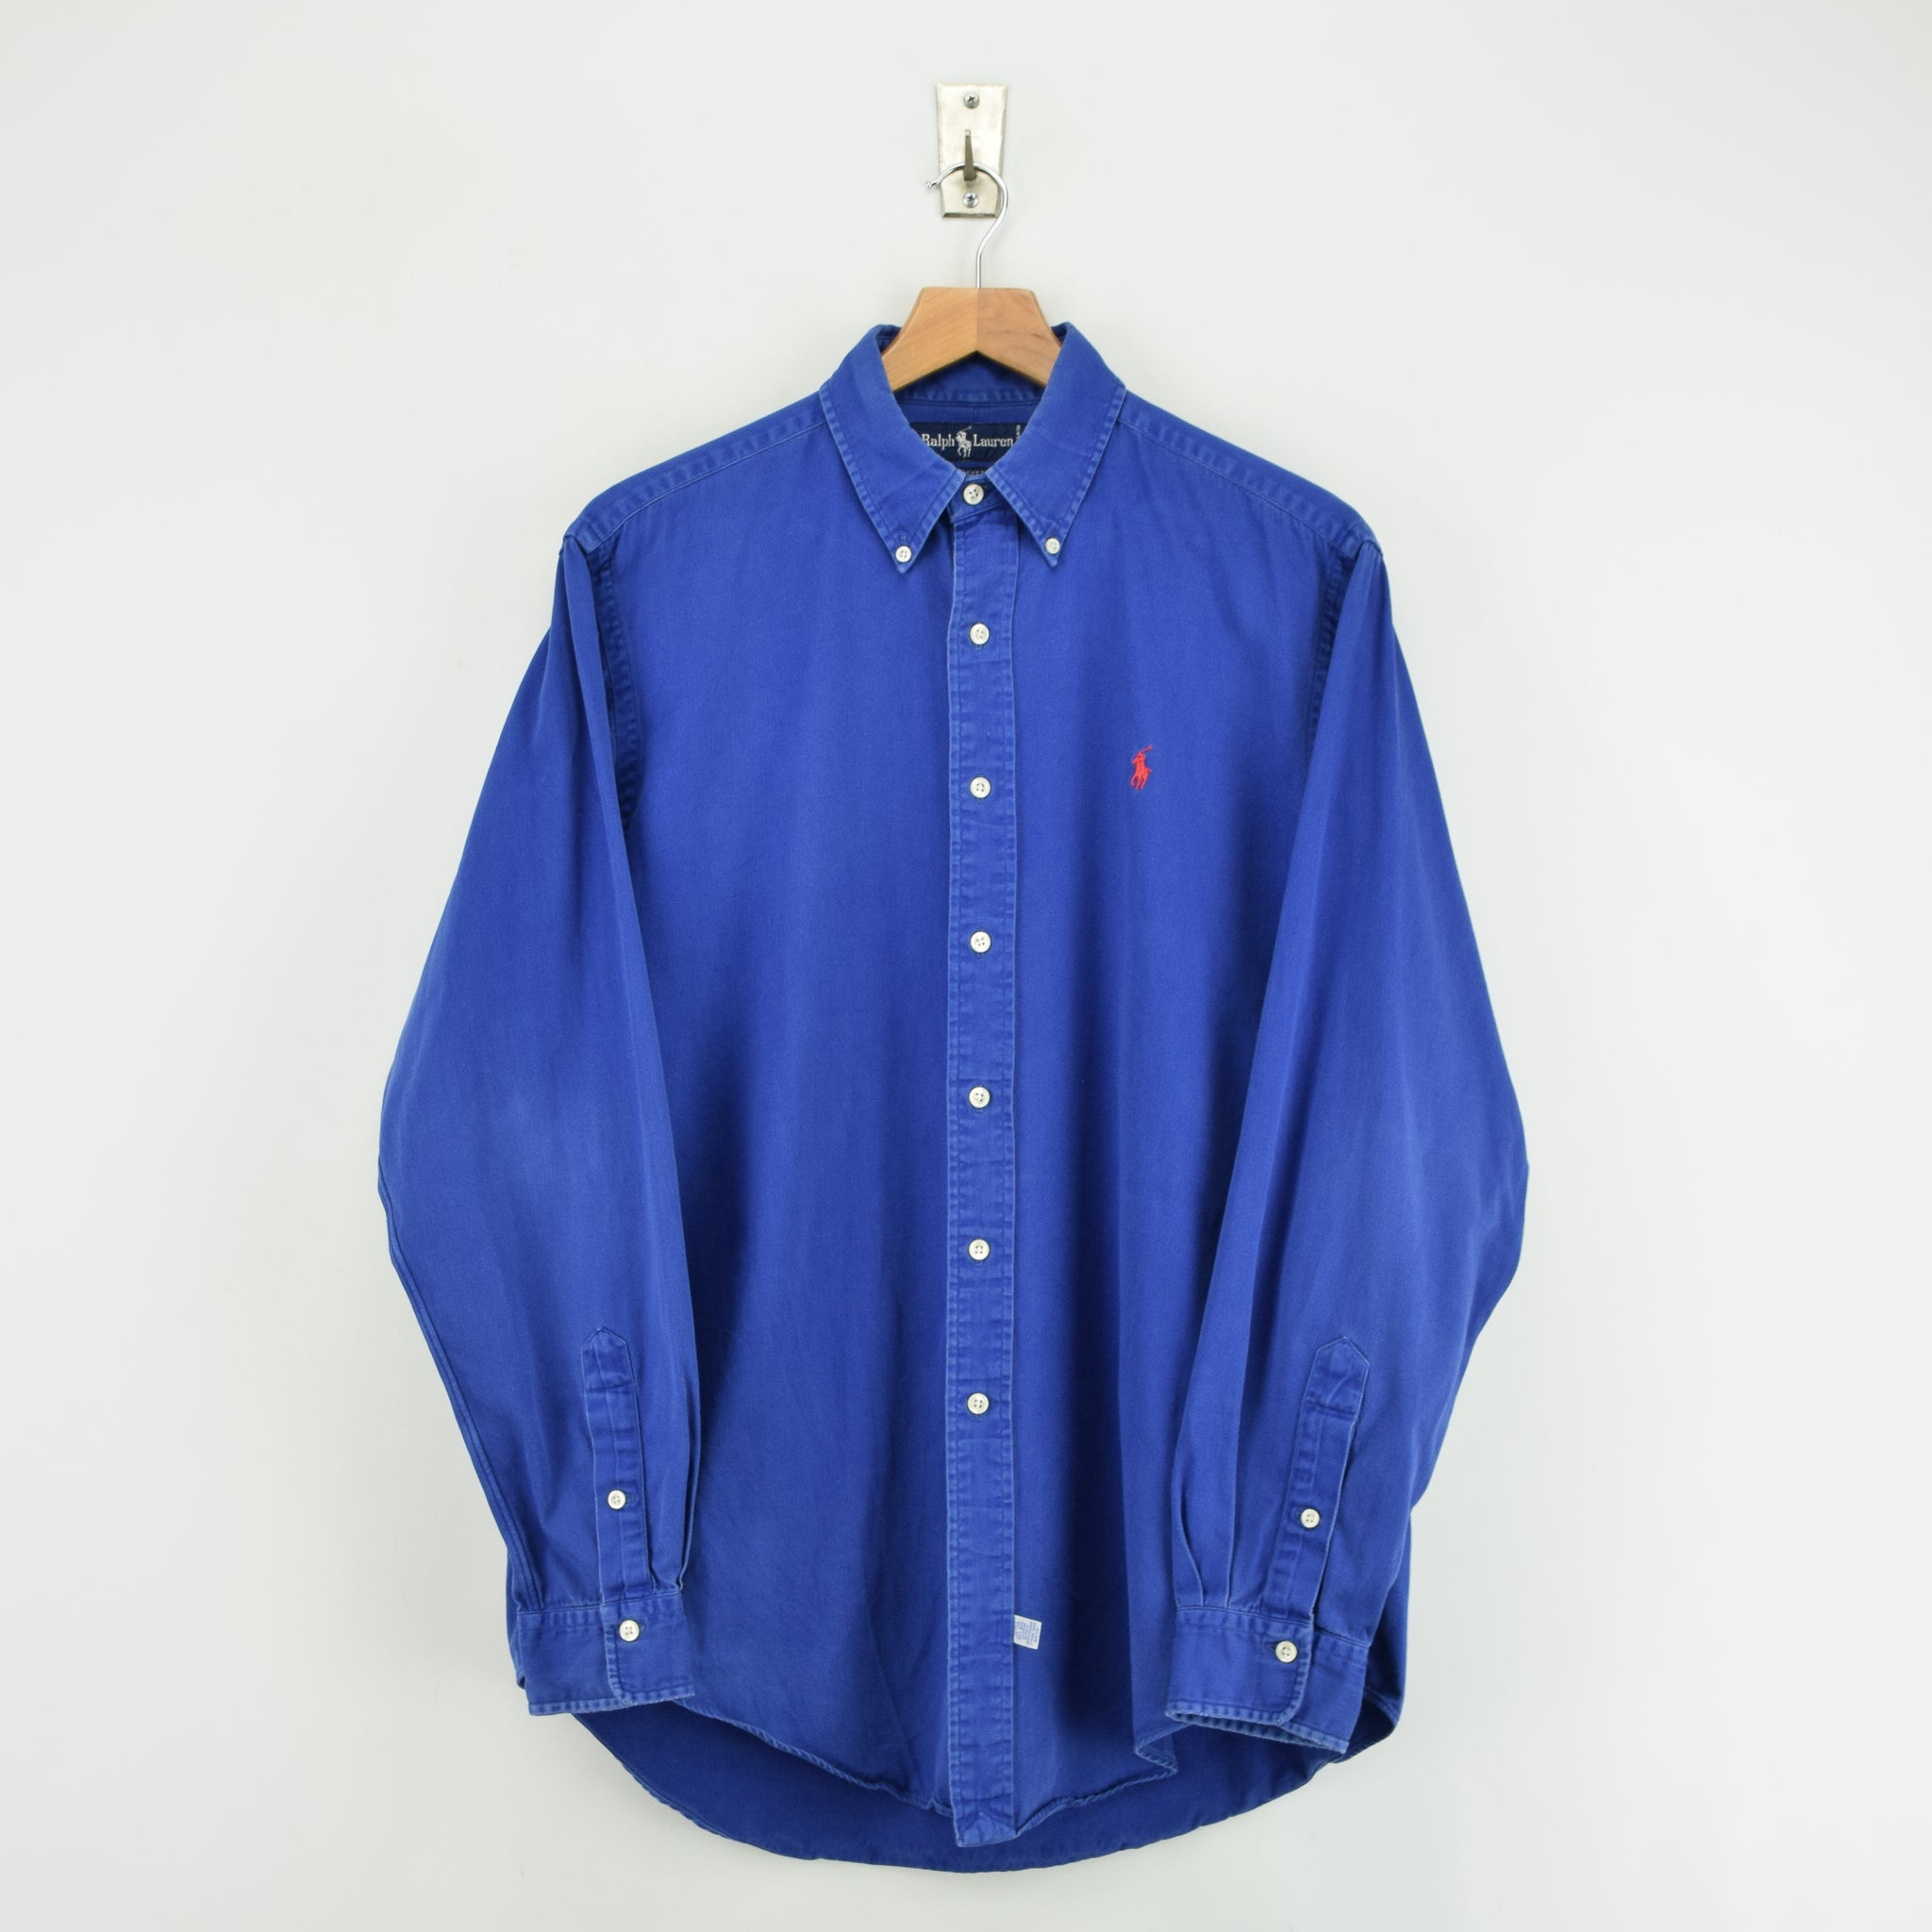 Vintage 80s Ralph Lauren Polo Blue Long Sleeve Cotton Shirt L front